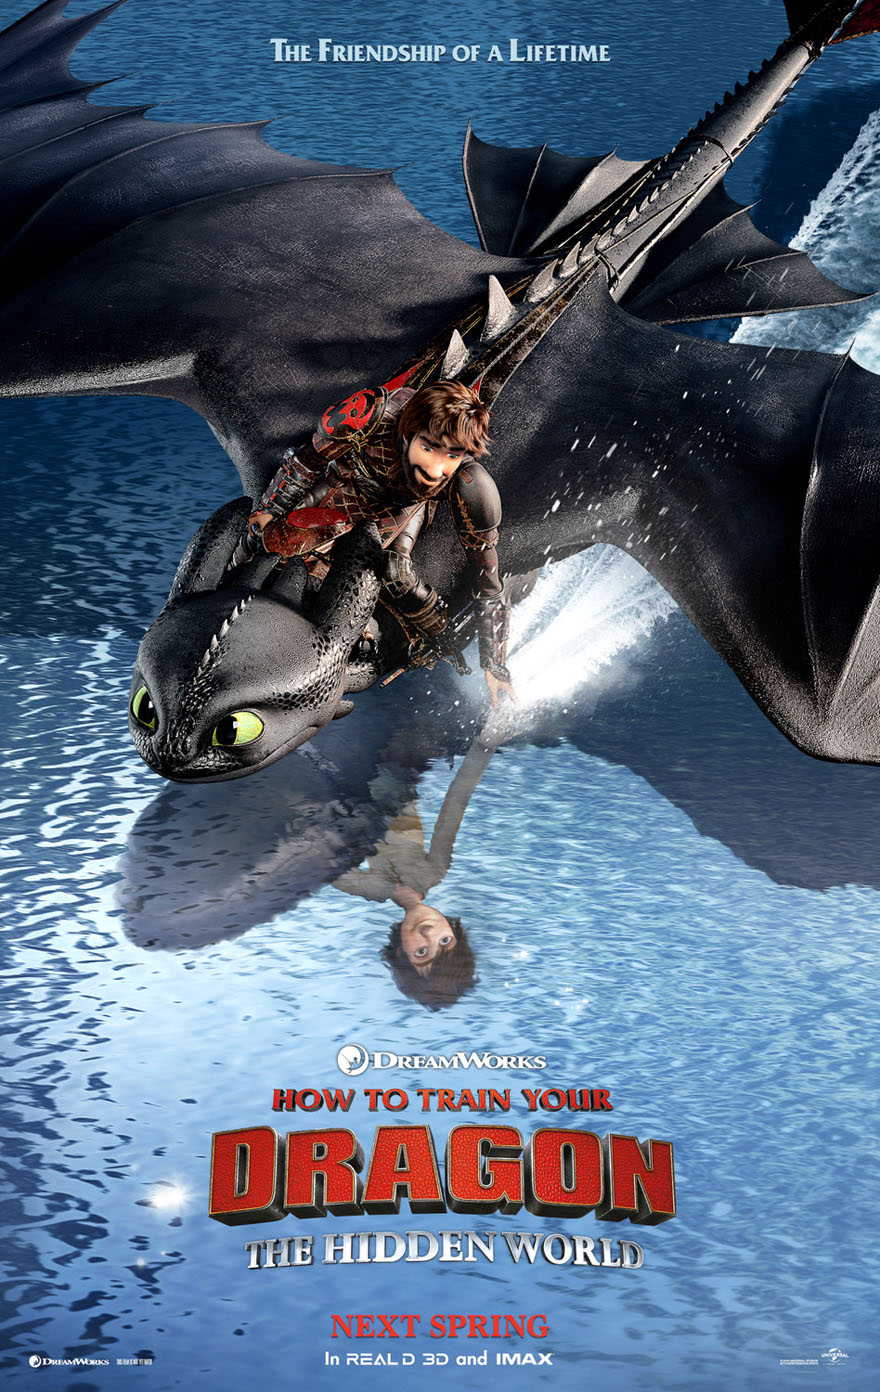 How To Train Your Dragon 3 The Hidden World Movie Poster Ds Original C 27x40 Ebay